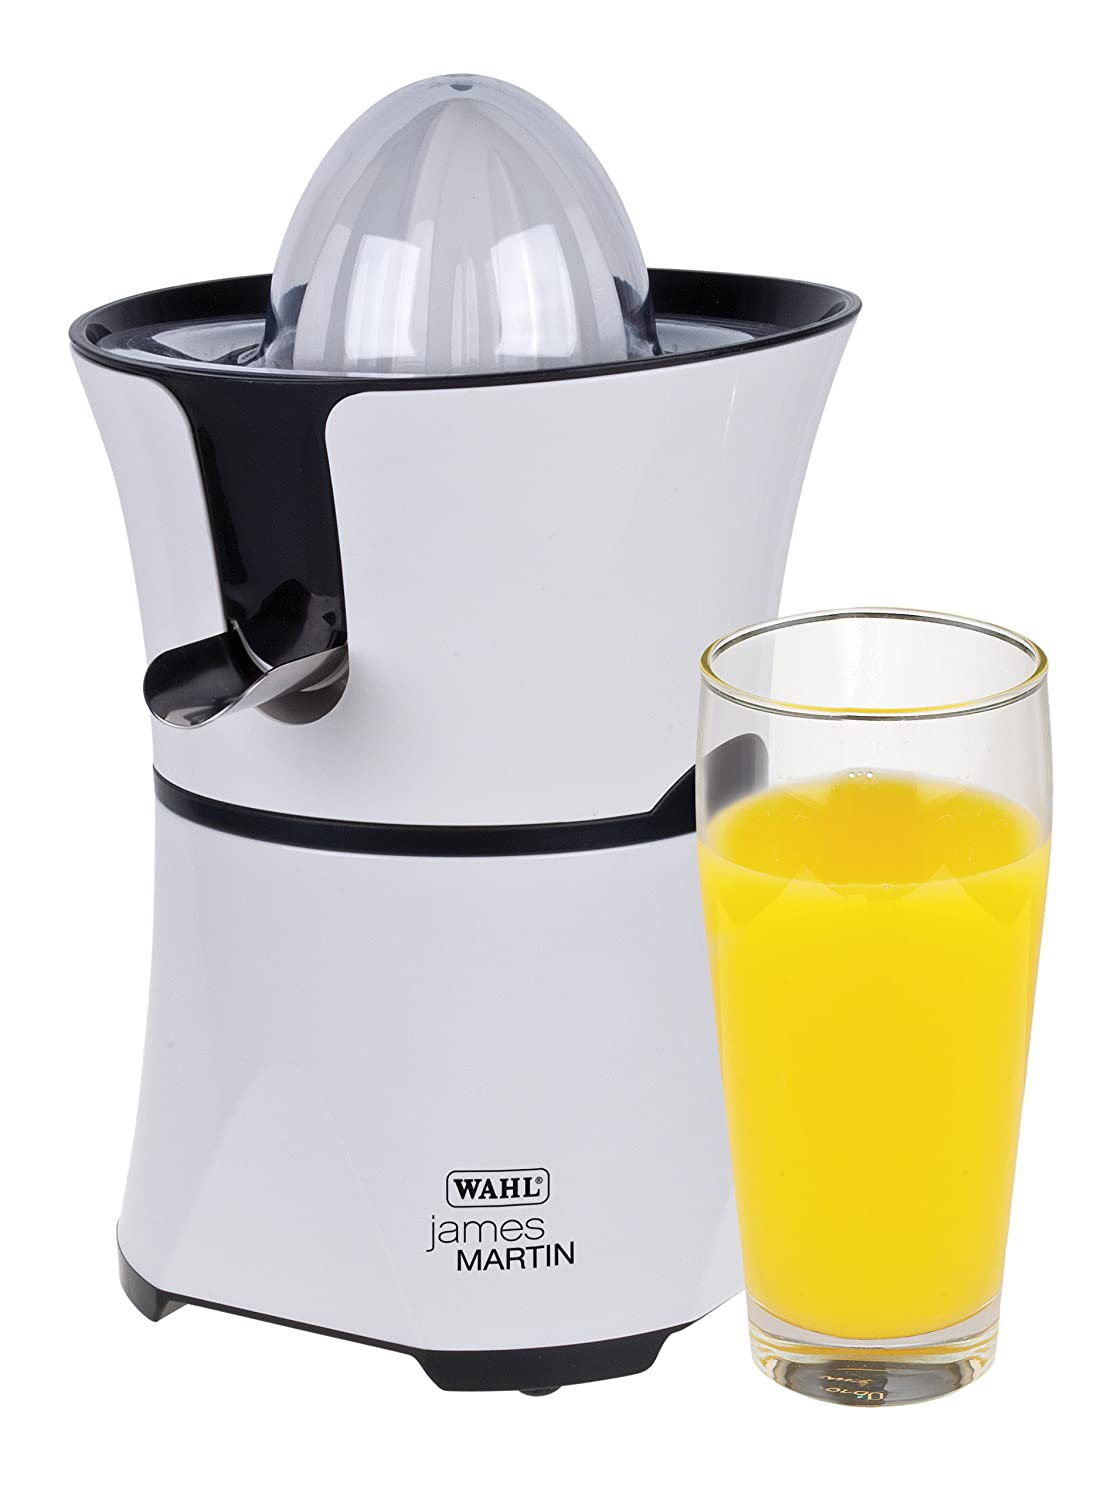 James Martin ZX834 Citrus Juicer, 60 W Wahl 5037127016077